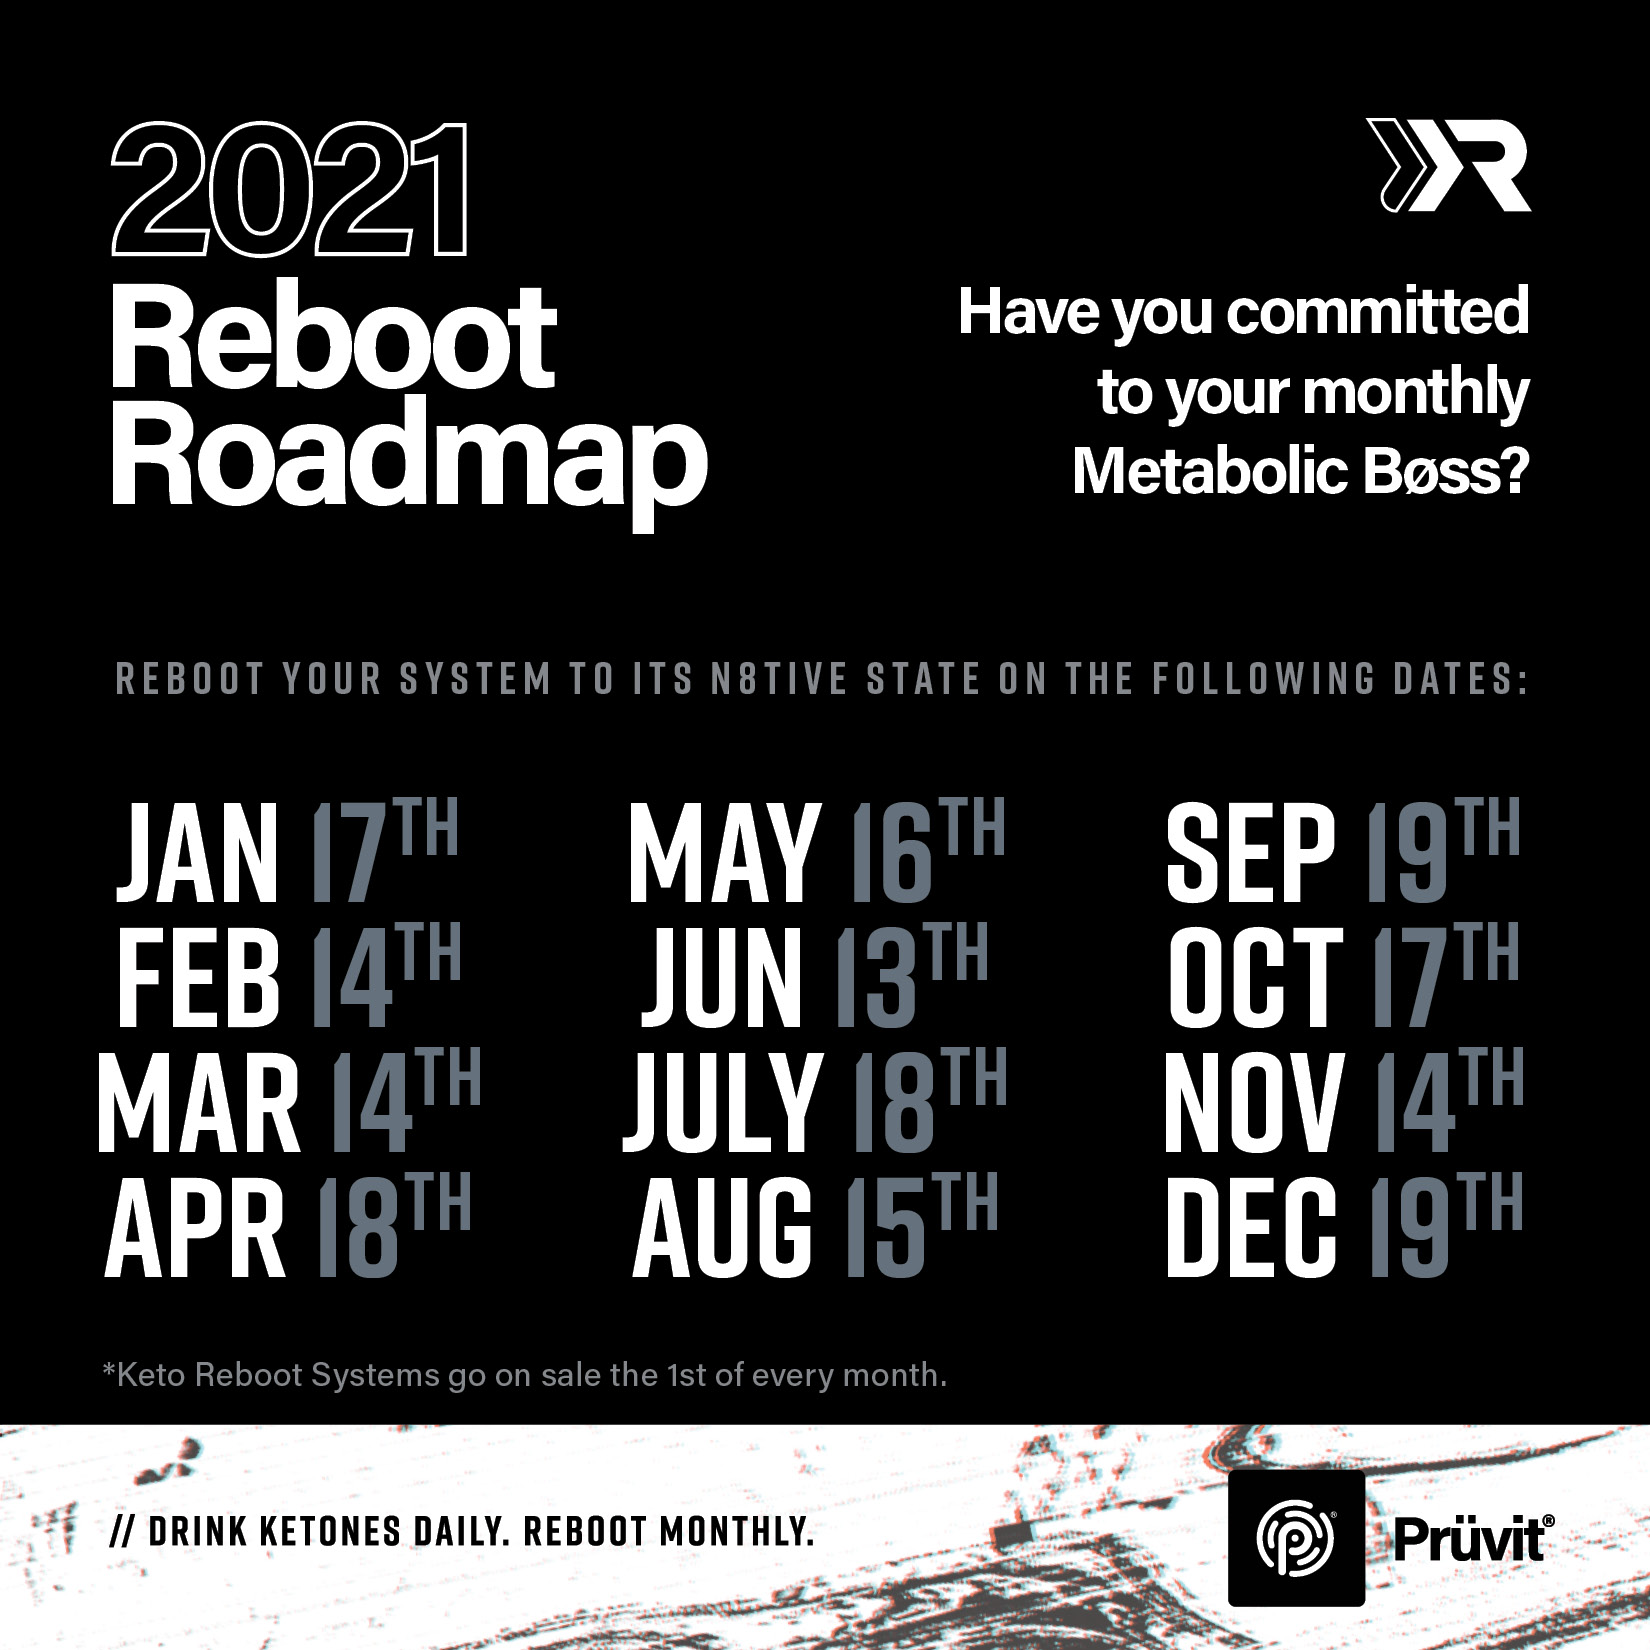 reboot-roadmap